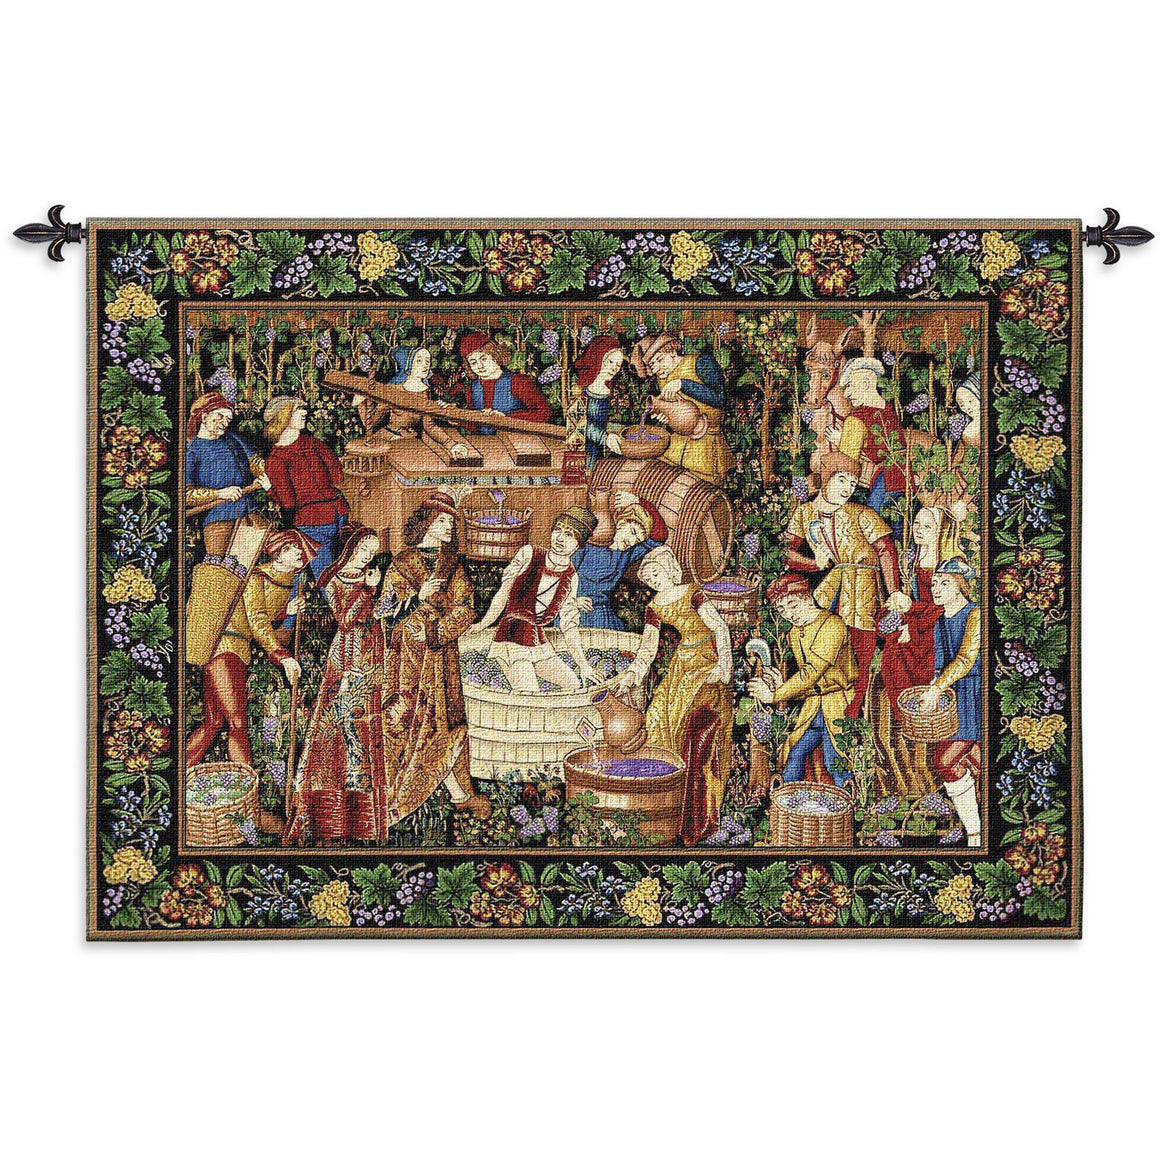 Les Vendanges Woven Textile Wall Hanging